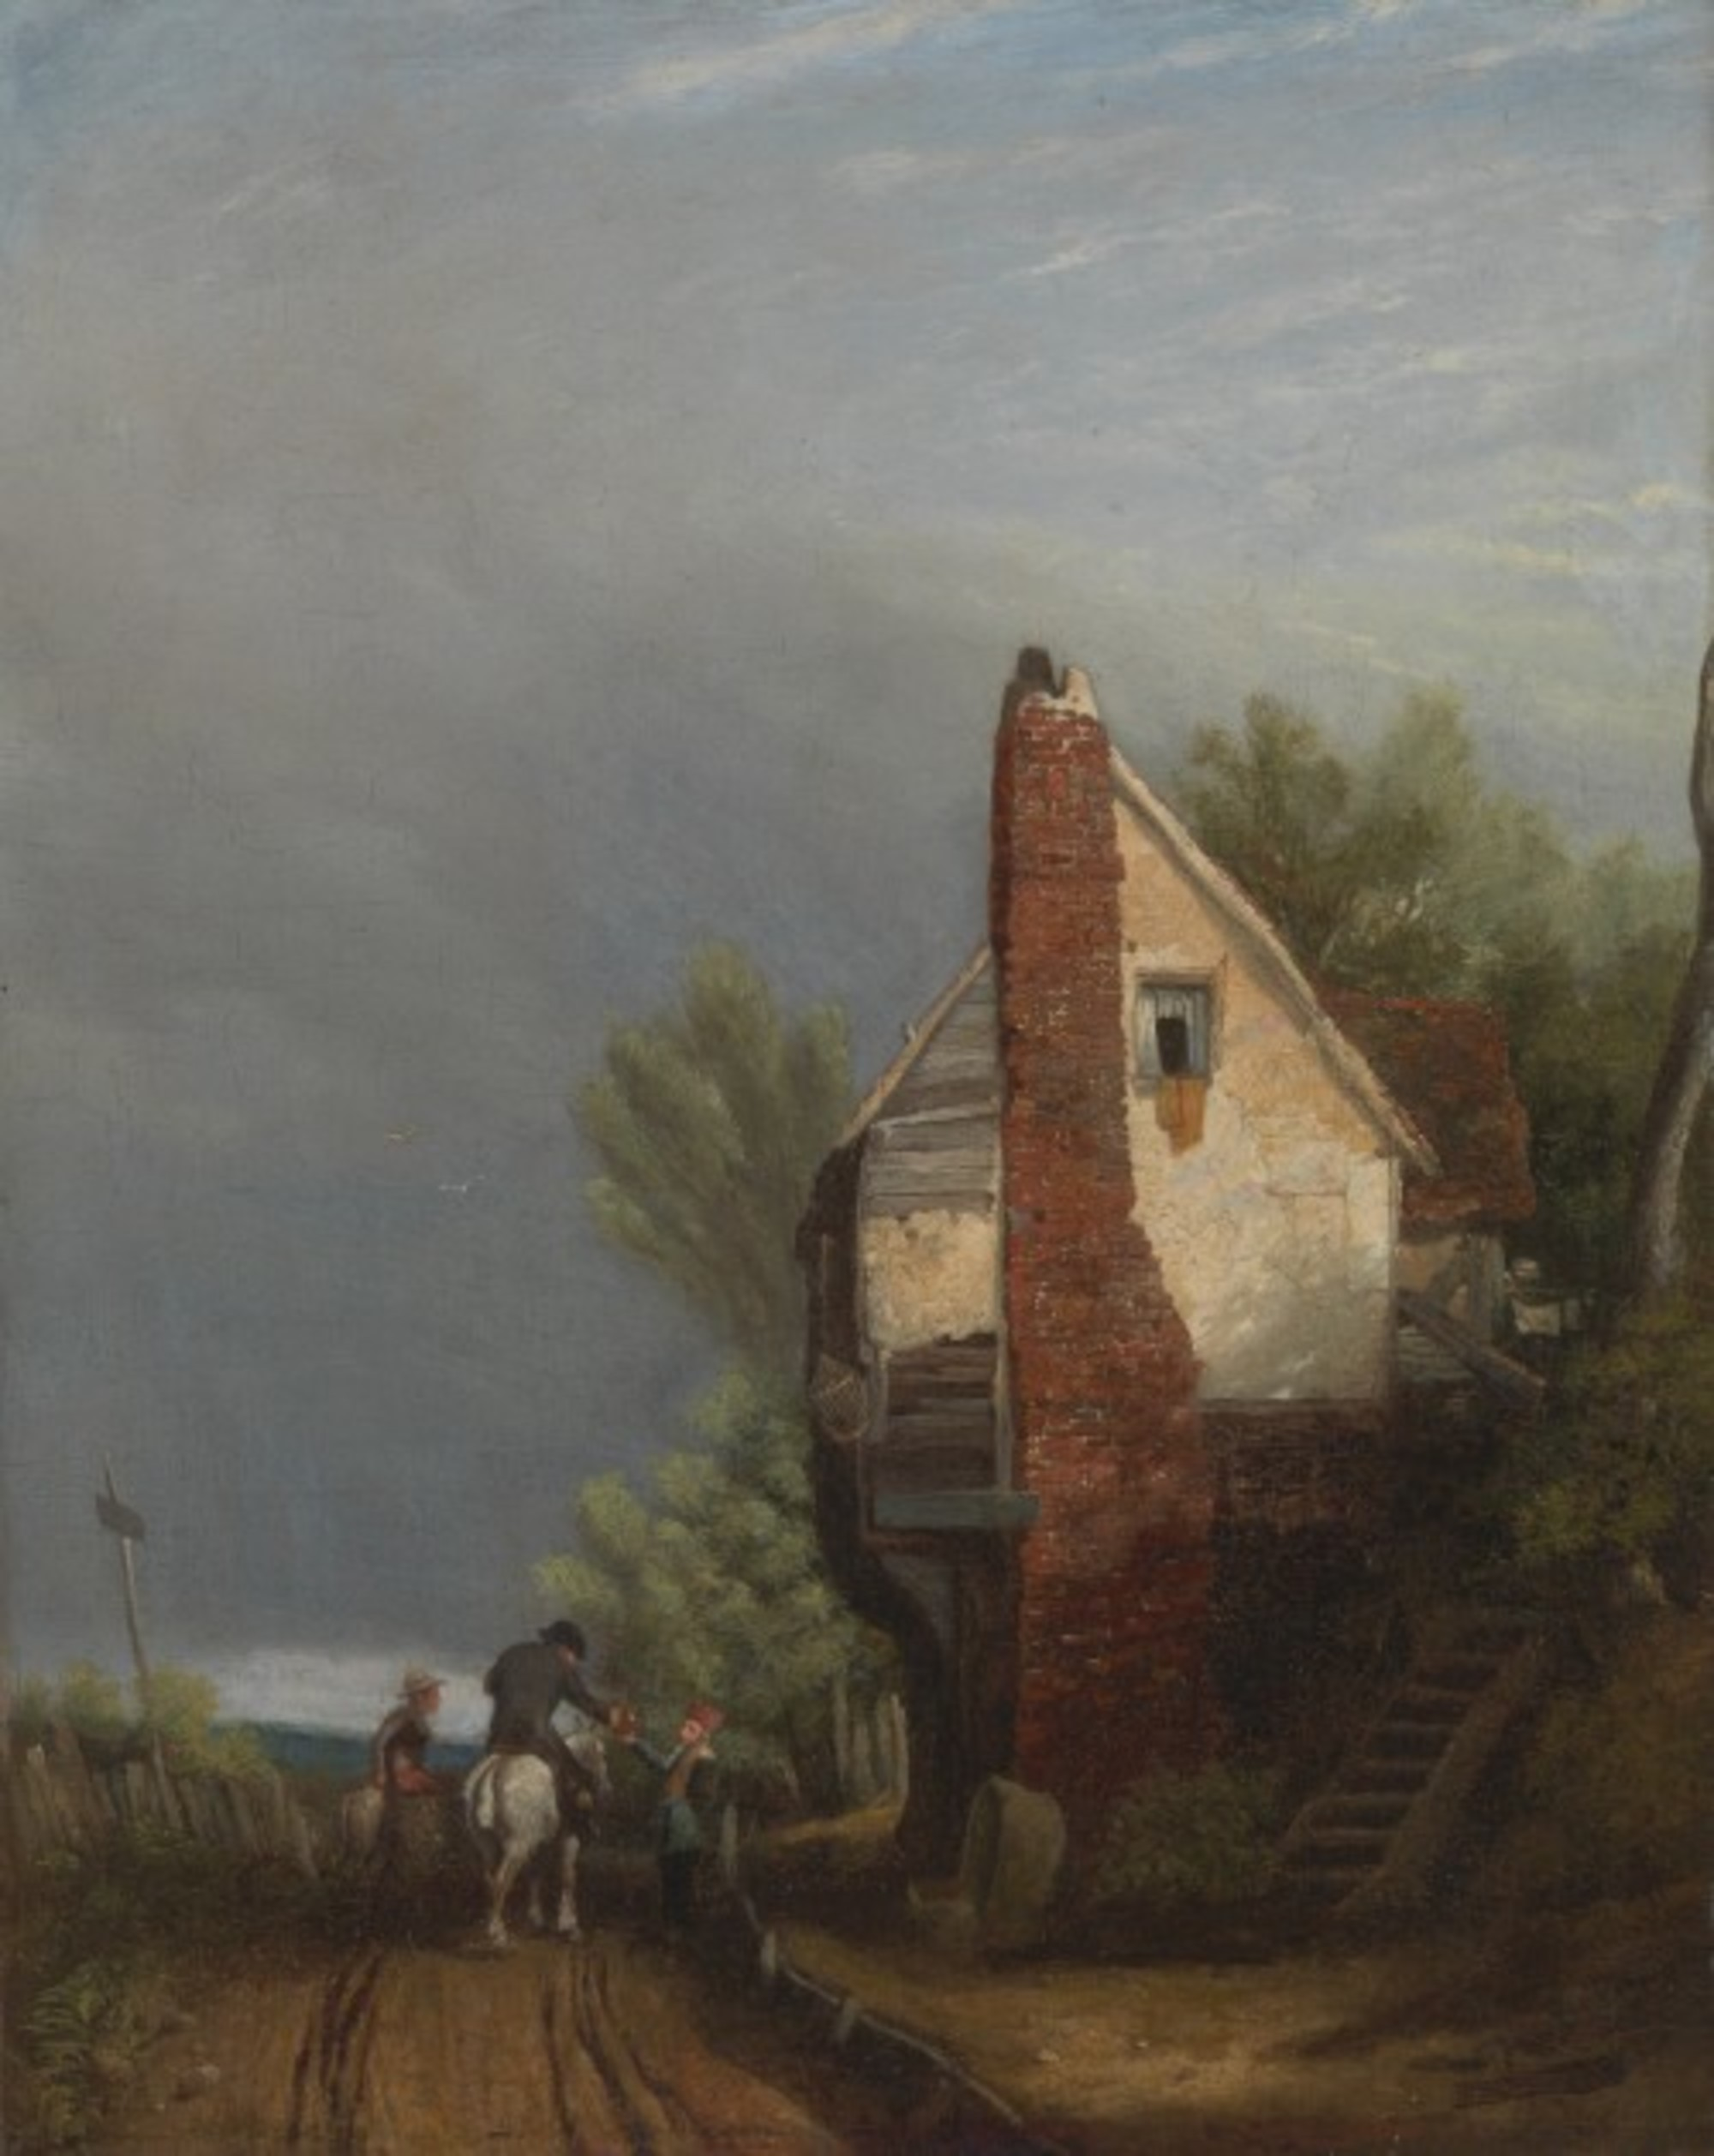 William-Mulready---An-Old-Gable---Google-Art-Project.jpg